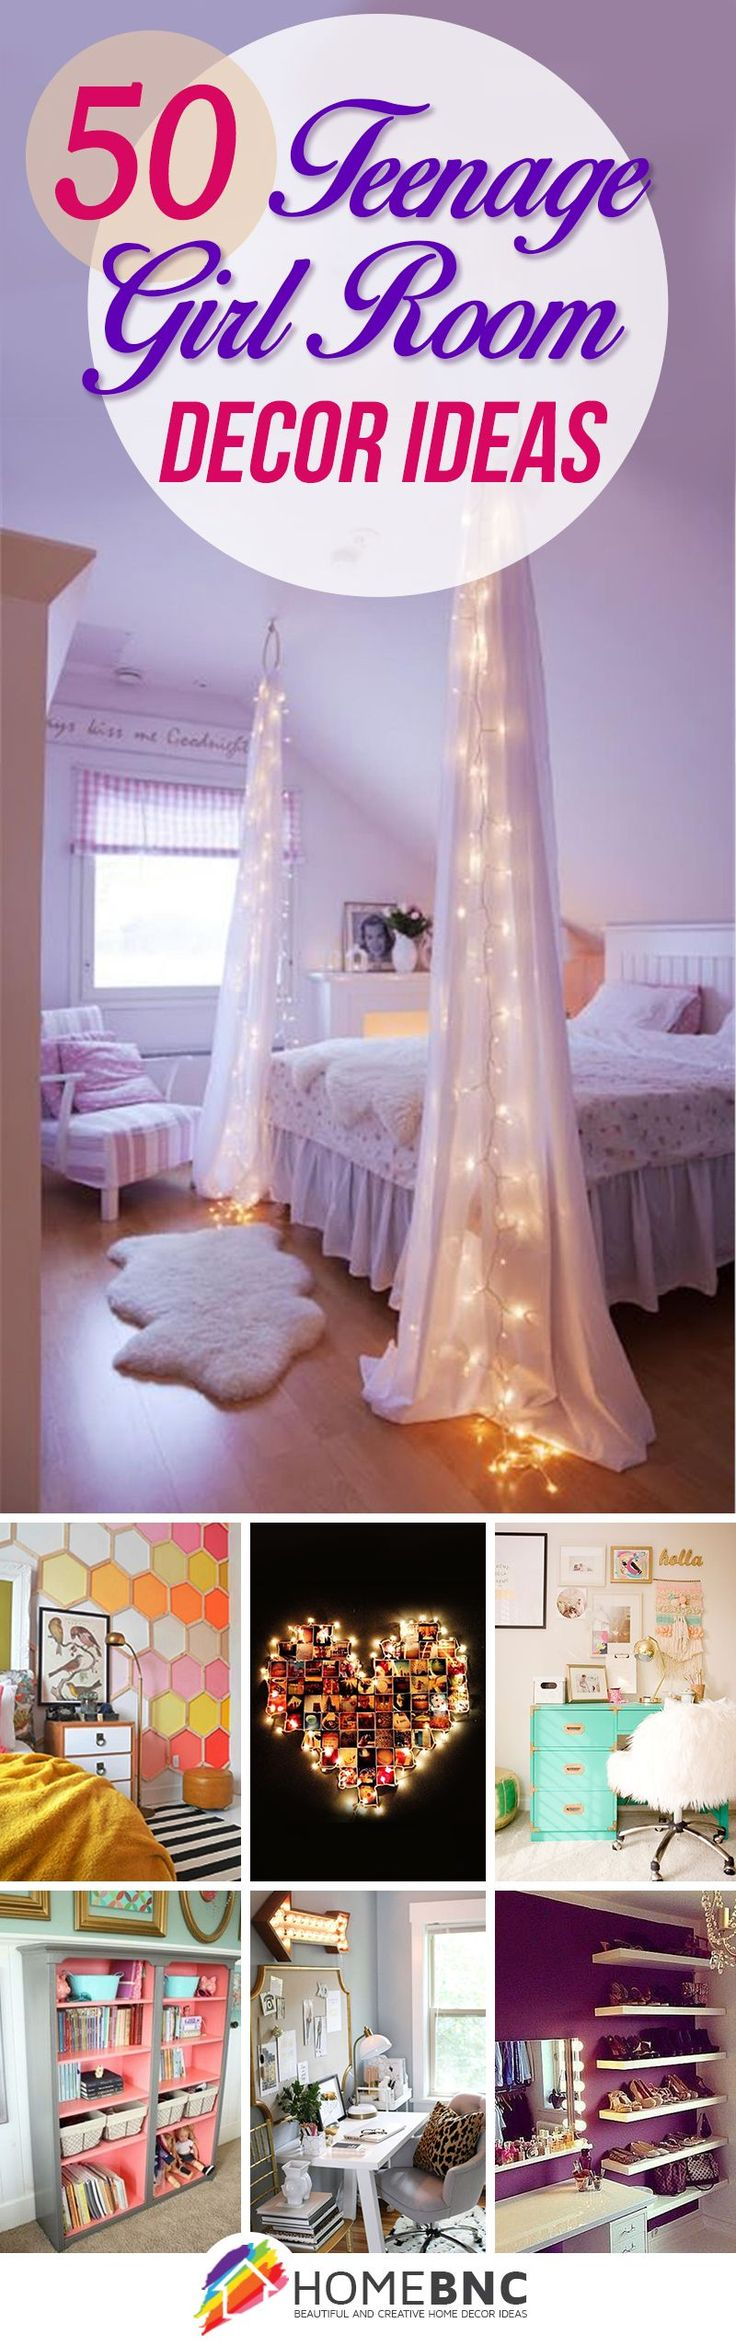 Bedroom Designs For Girls best 25+ girl rooms ideas on pinterest | girl room, girl bedroom